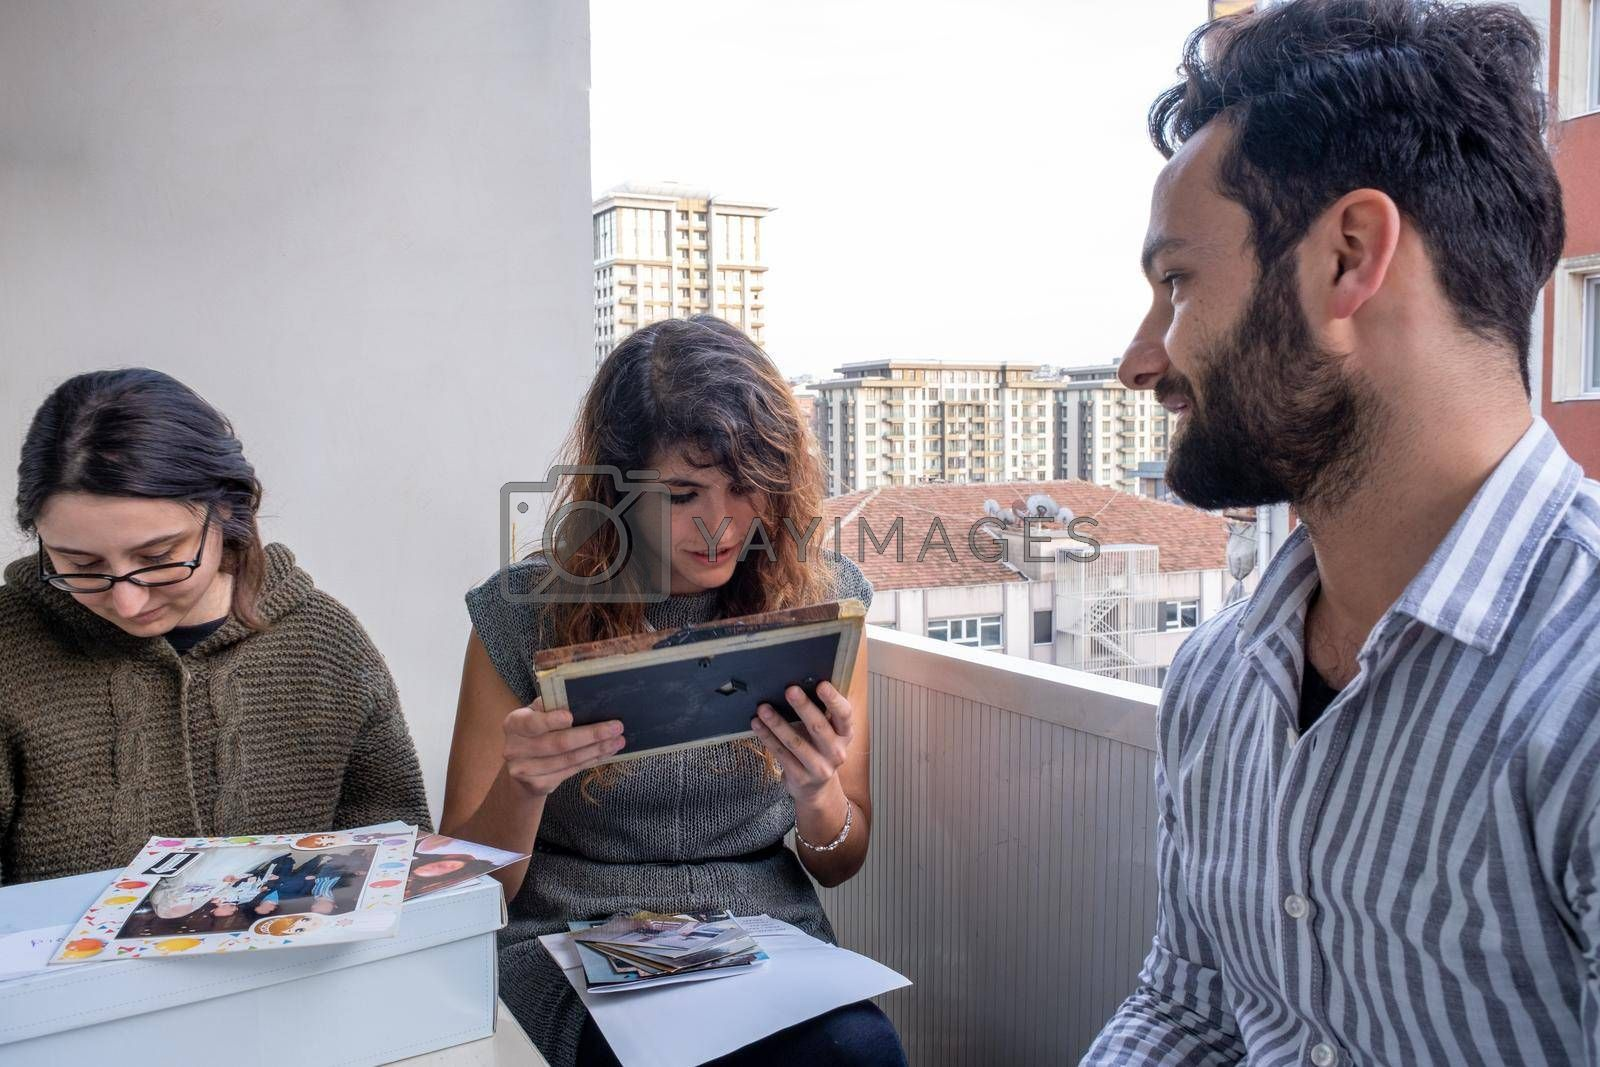 some friends checking photos in a curious way in their balcony at home